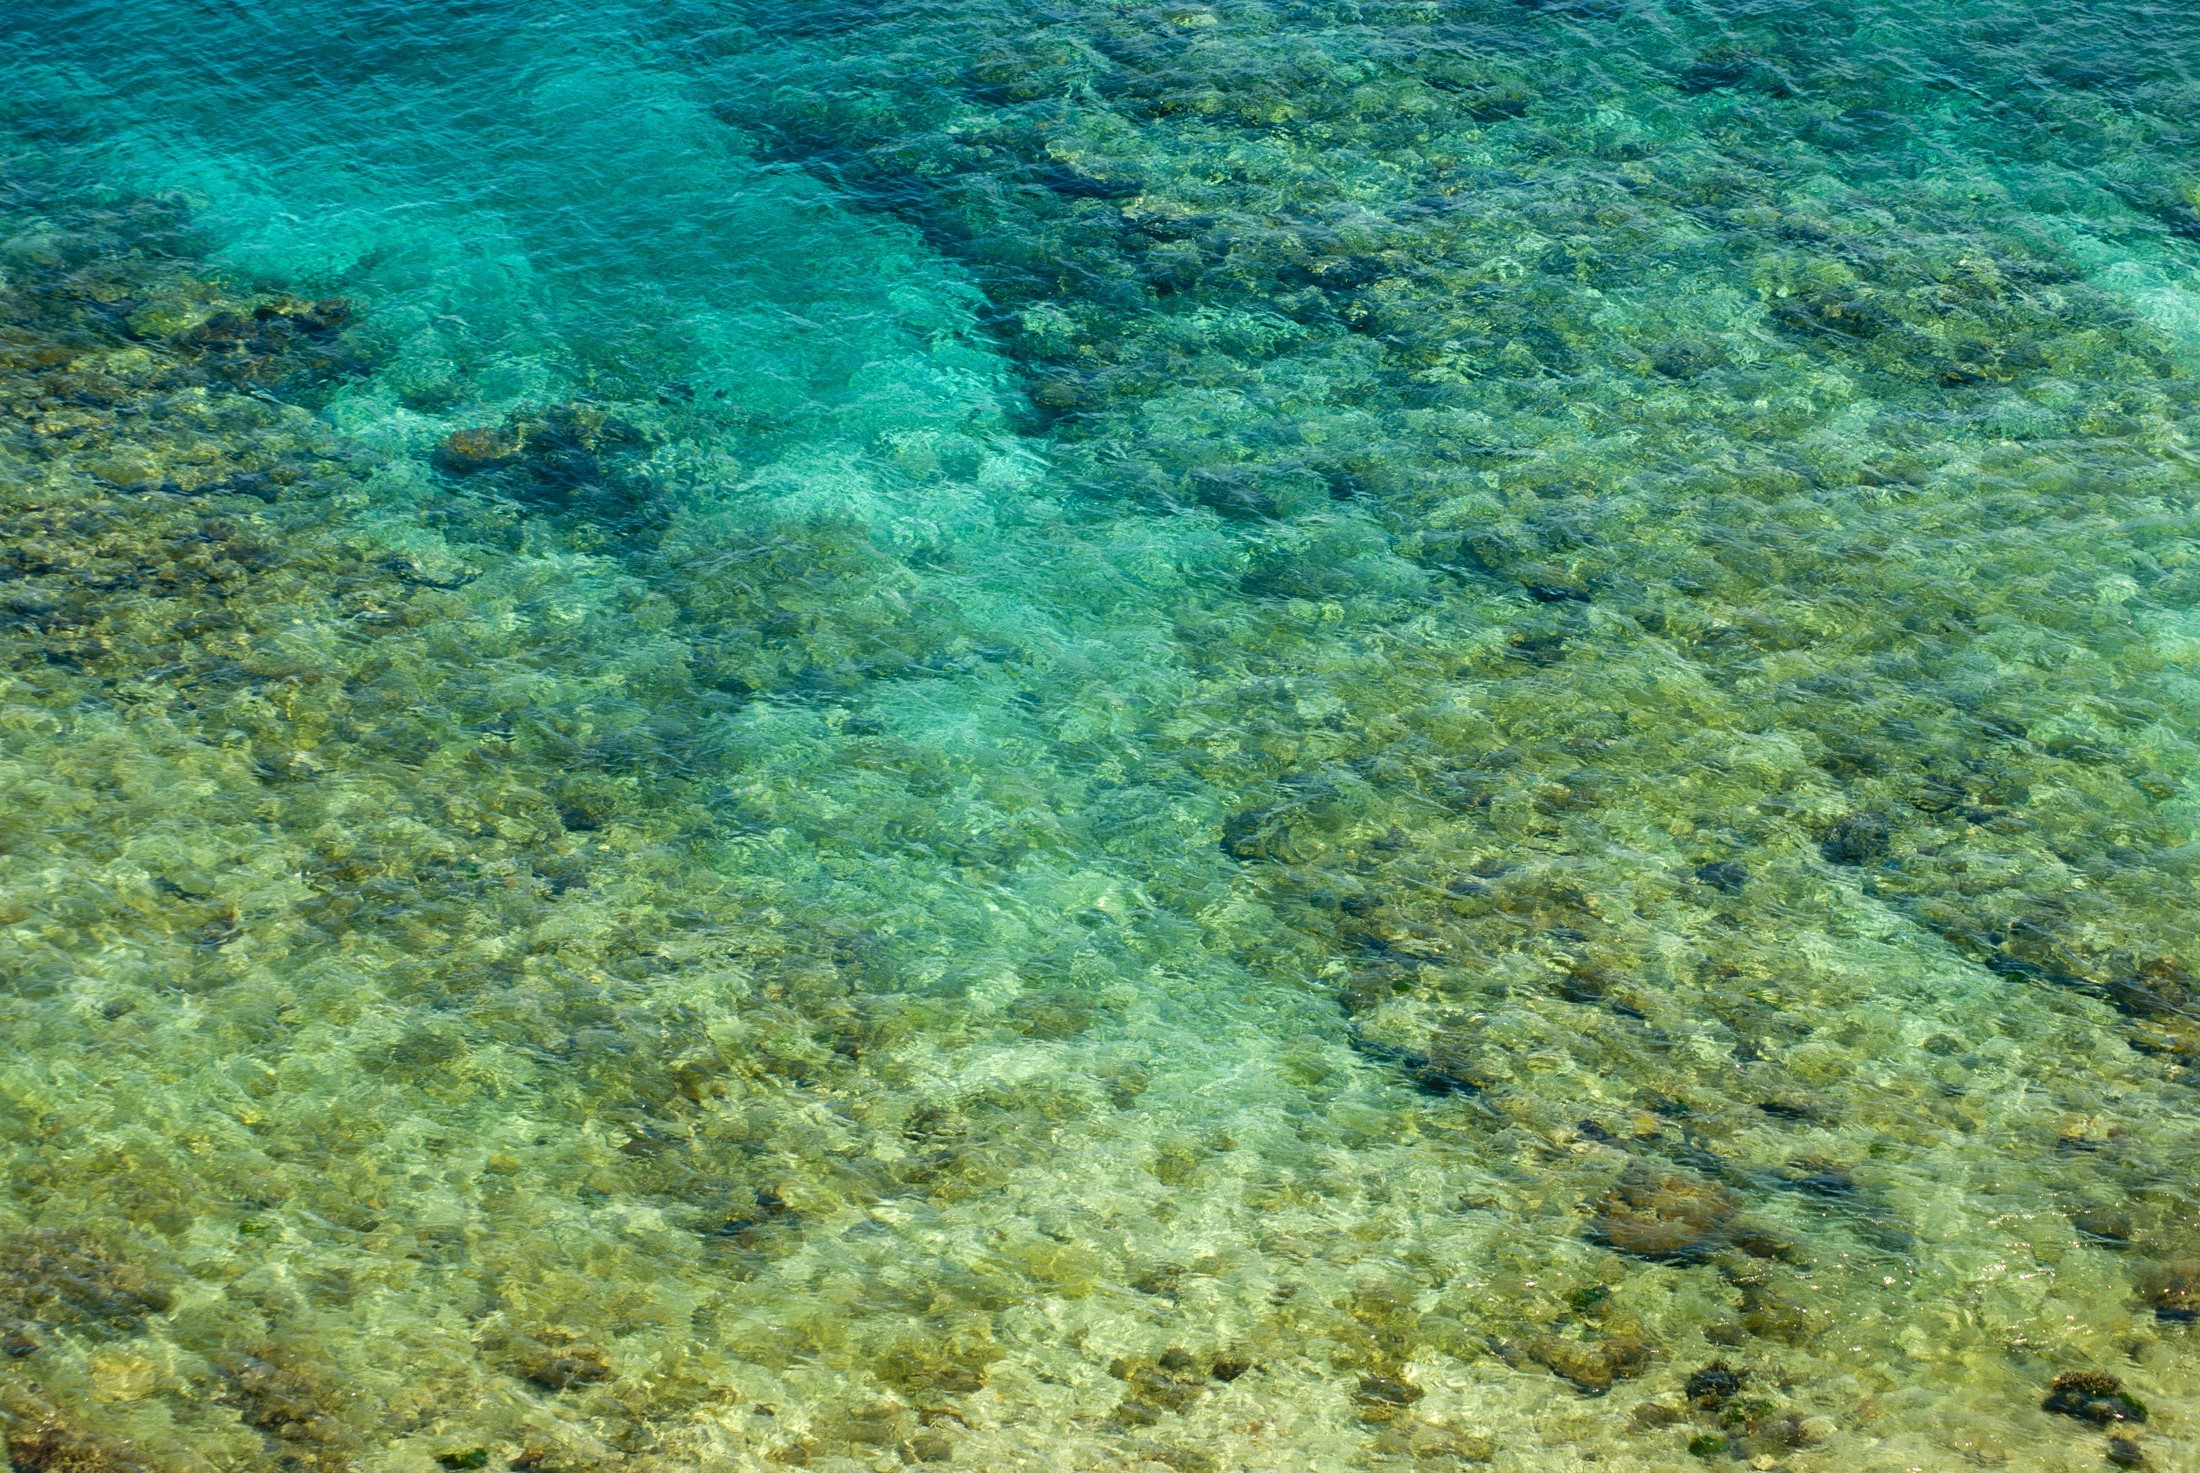 Abstract background of shallow crystal clear blue water with coral just offshore on a Fijian island